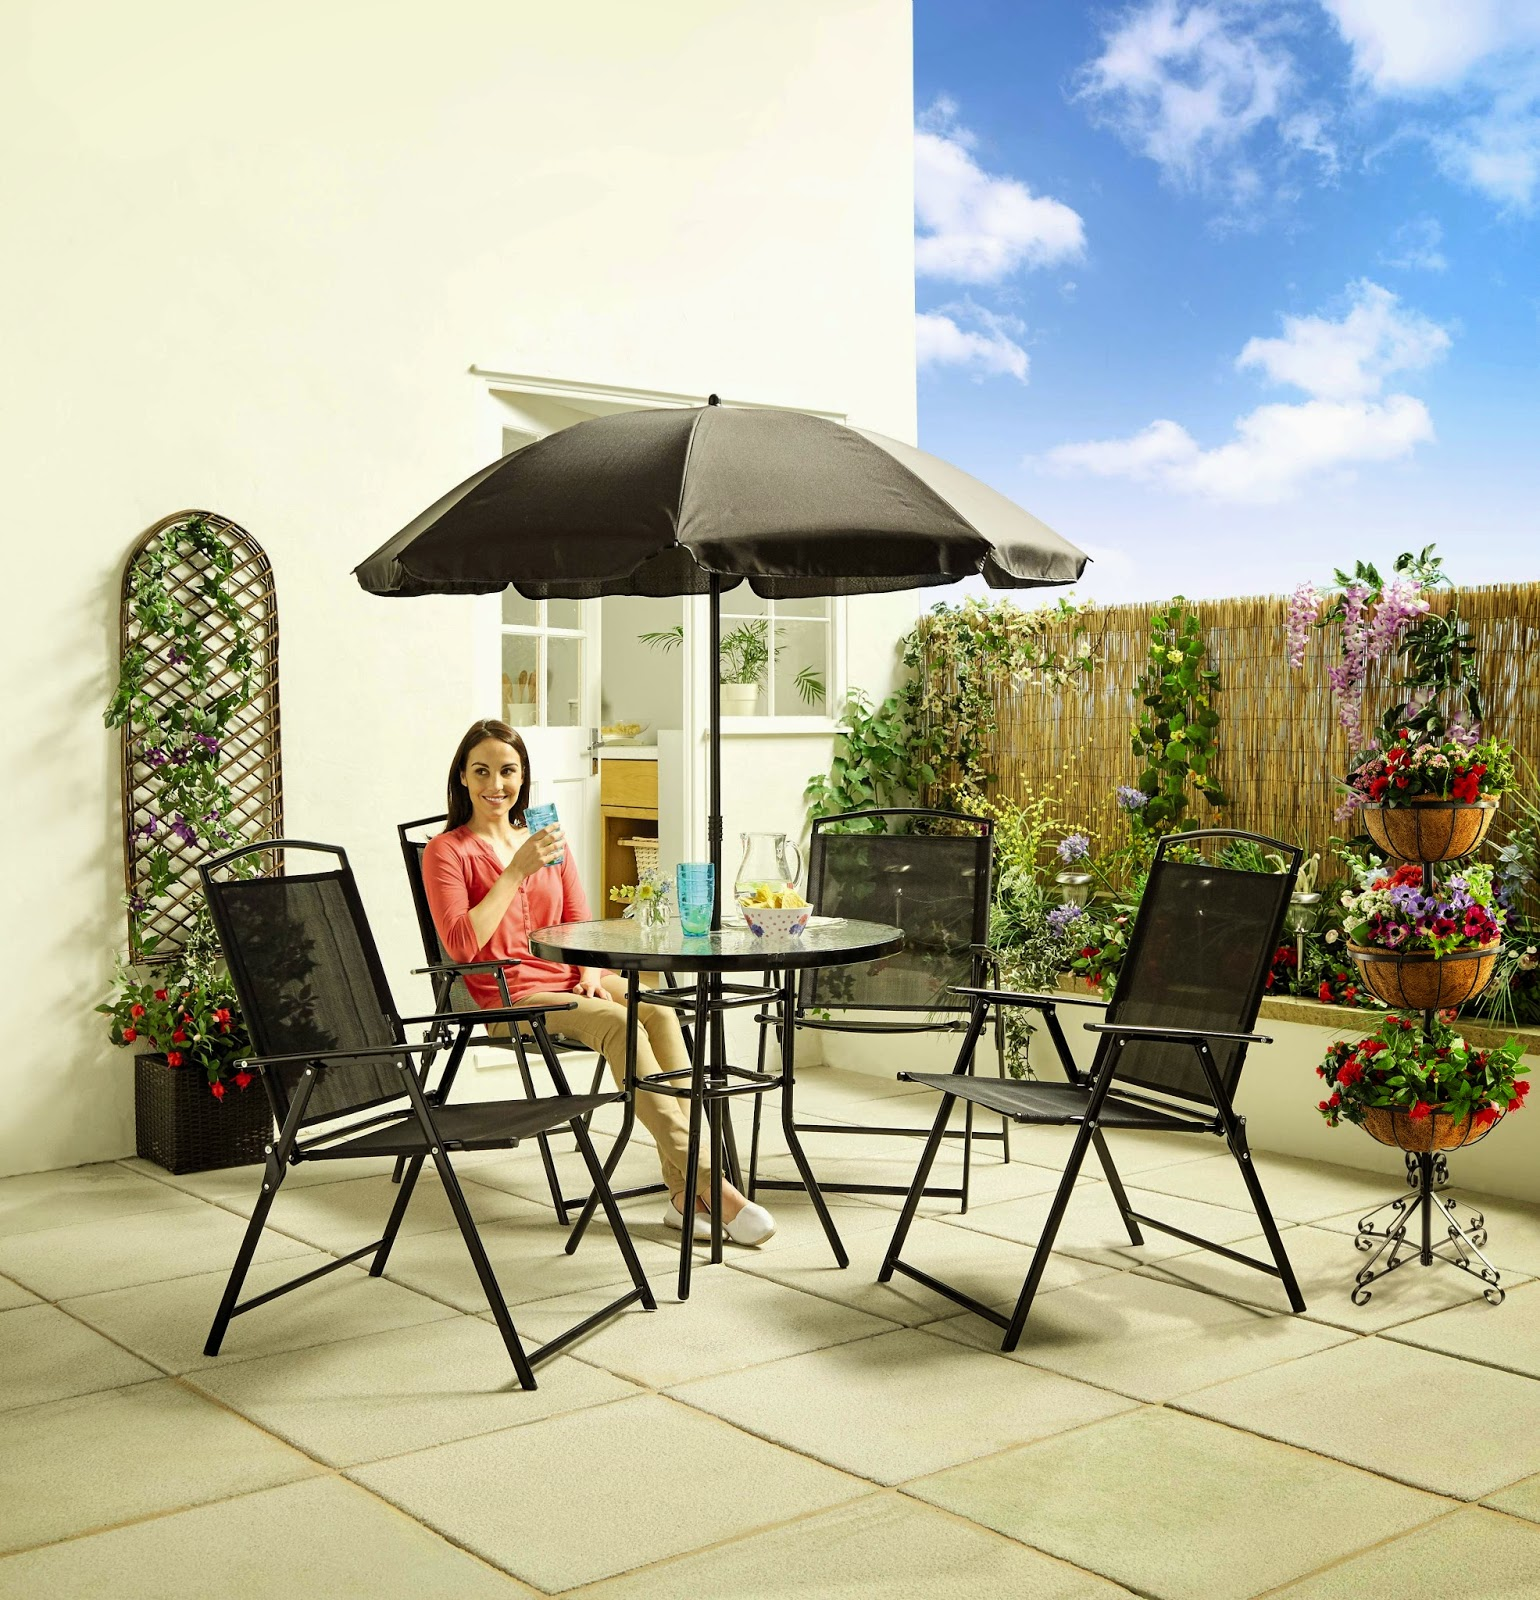 Madhouse Family Reviews Aldi S Outdoor Decor And Outdoor Living